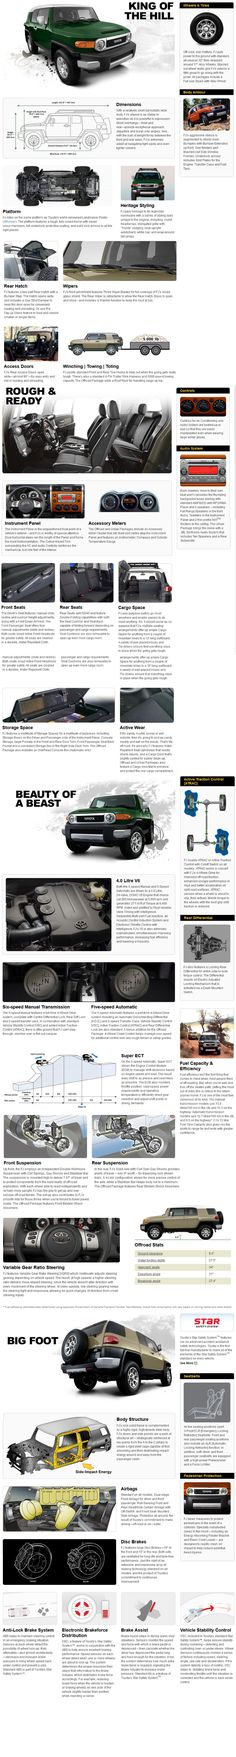 2014 Toyota FJ Cruiser Features                                                                                                                                                                                 More